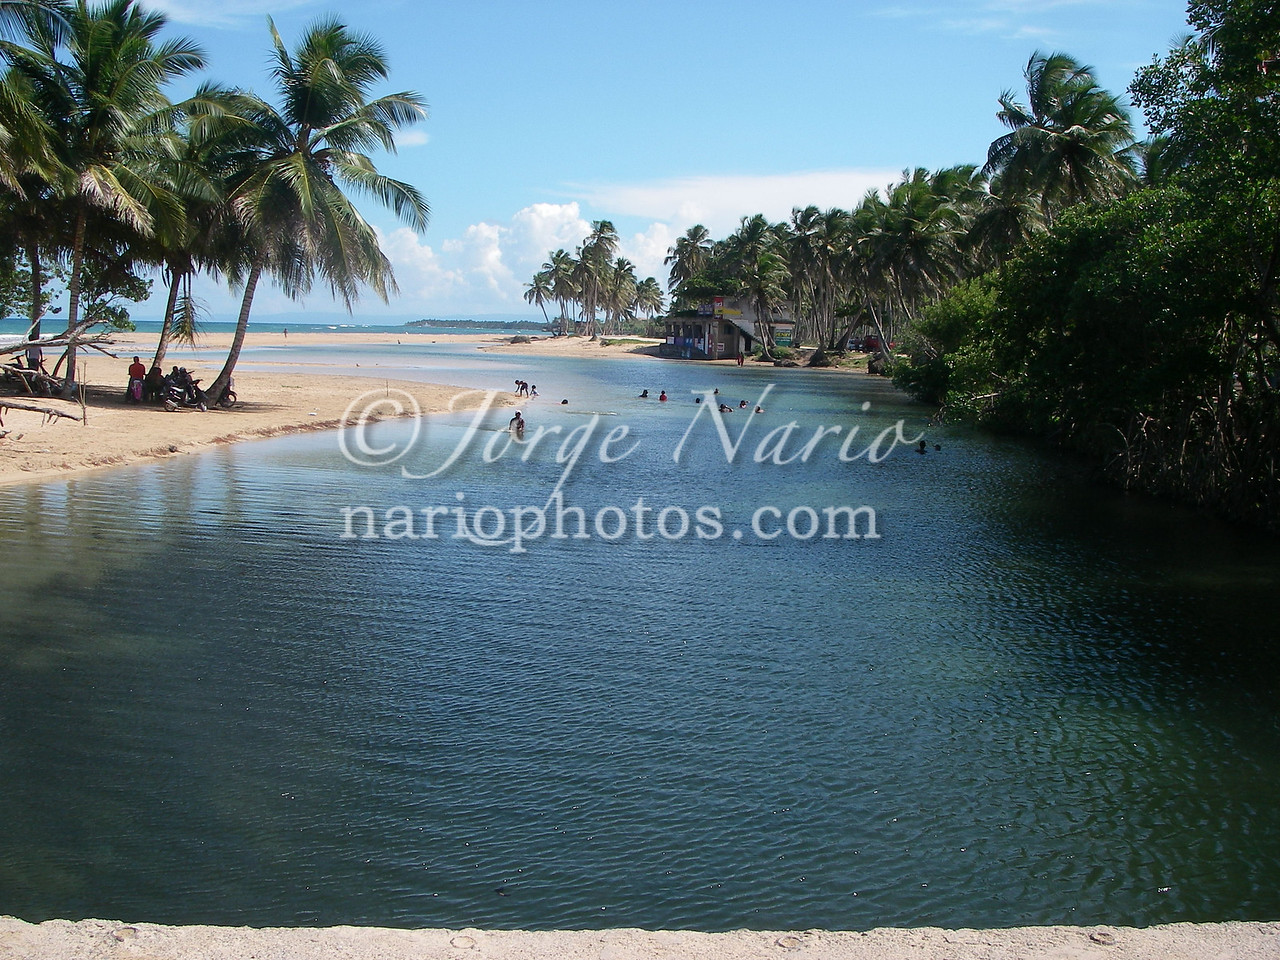 <b><font color=red>OK now check this out...</font></b> this beach is an estuary (where a river joins the sea). One side of the beach faces the ocean, is lined by palm trees, has waves, fine sand and the other side is the darker, cooler water of a river, lined by trees and strong currents. This is shot of where the river joins the ocean is taken from the river side.